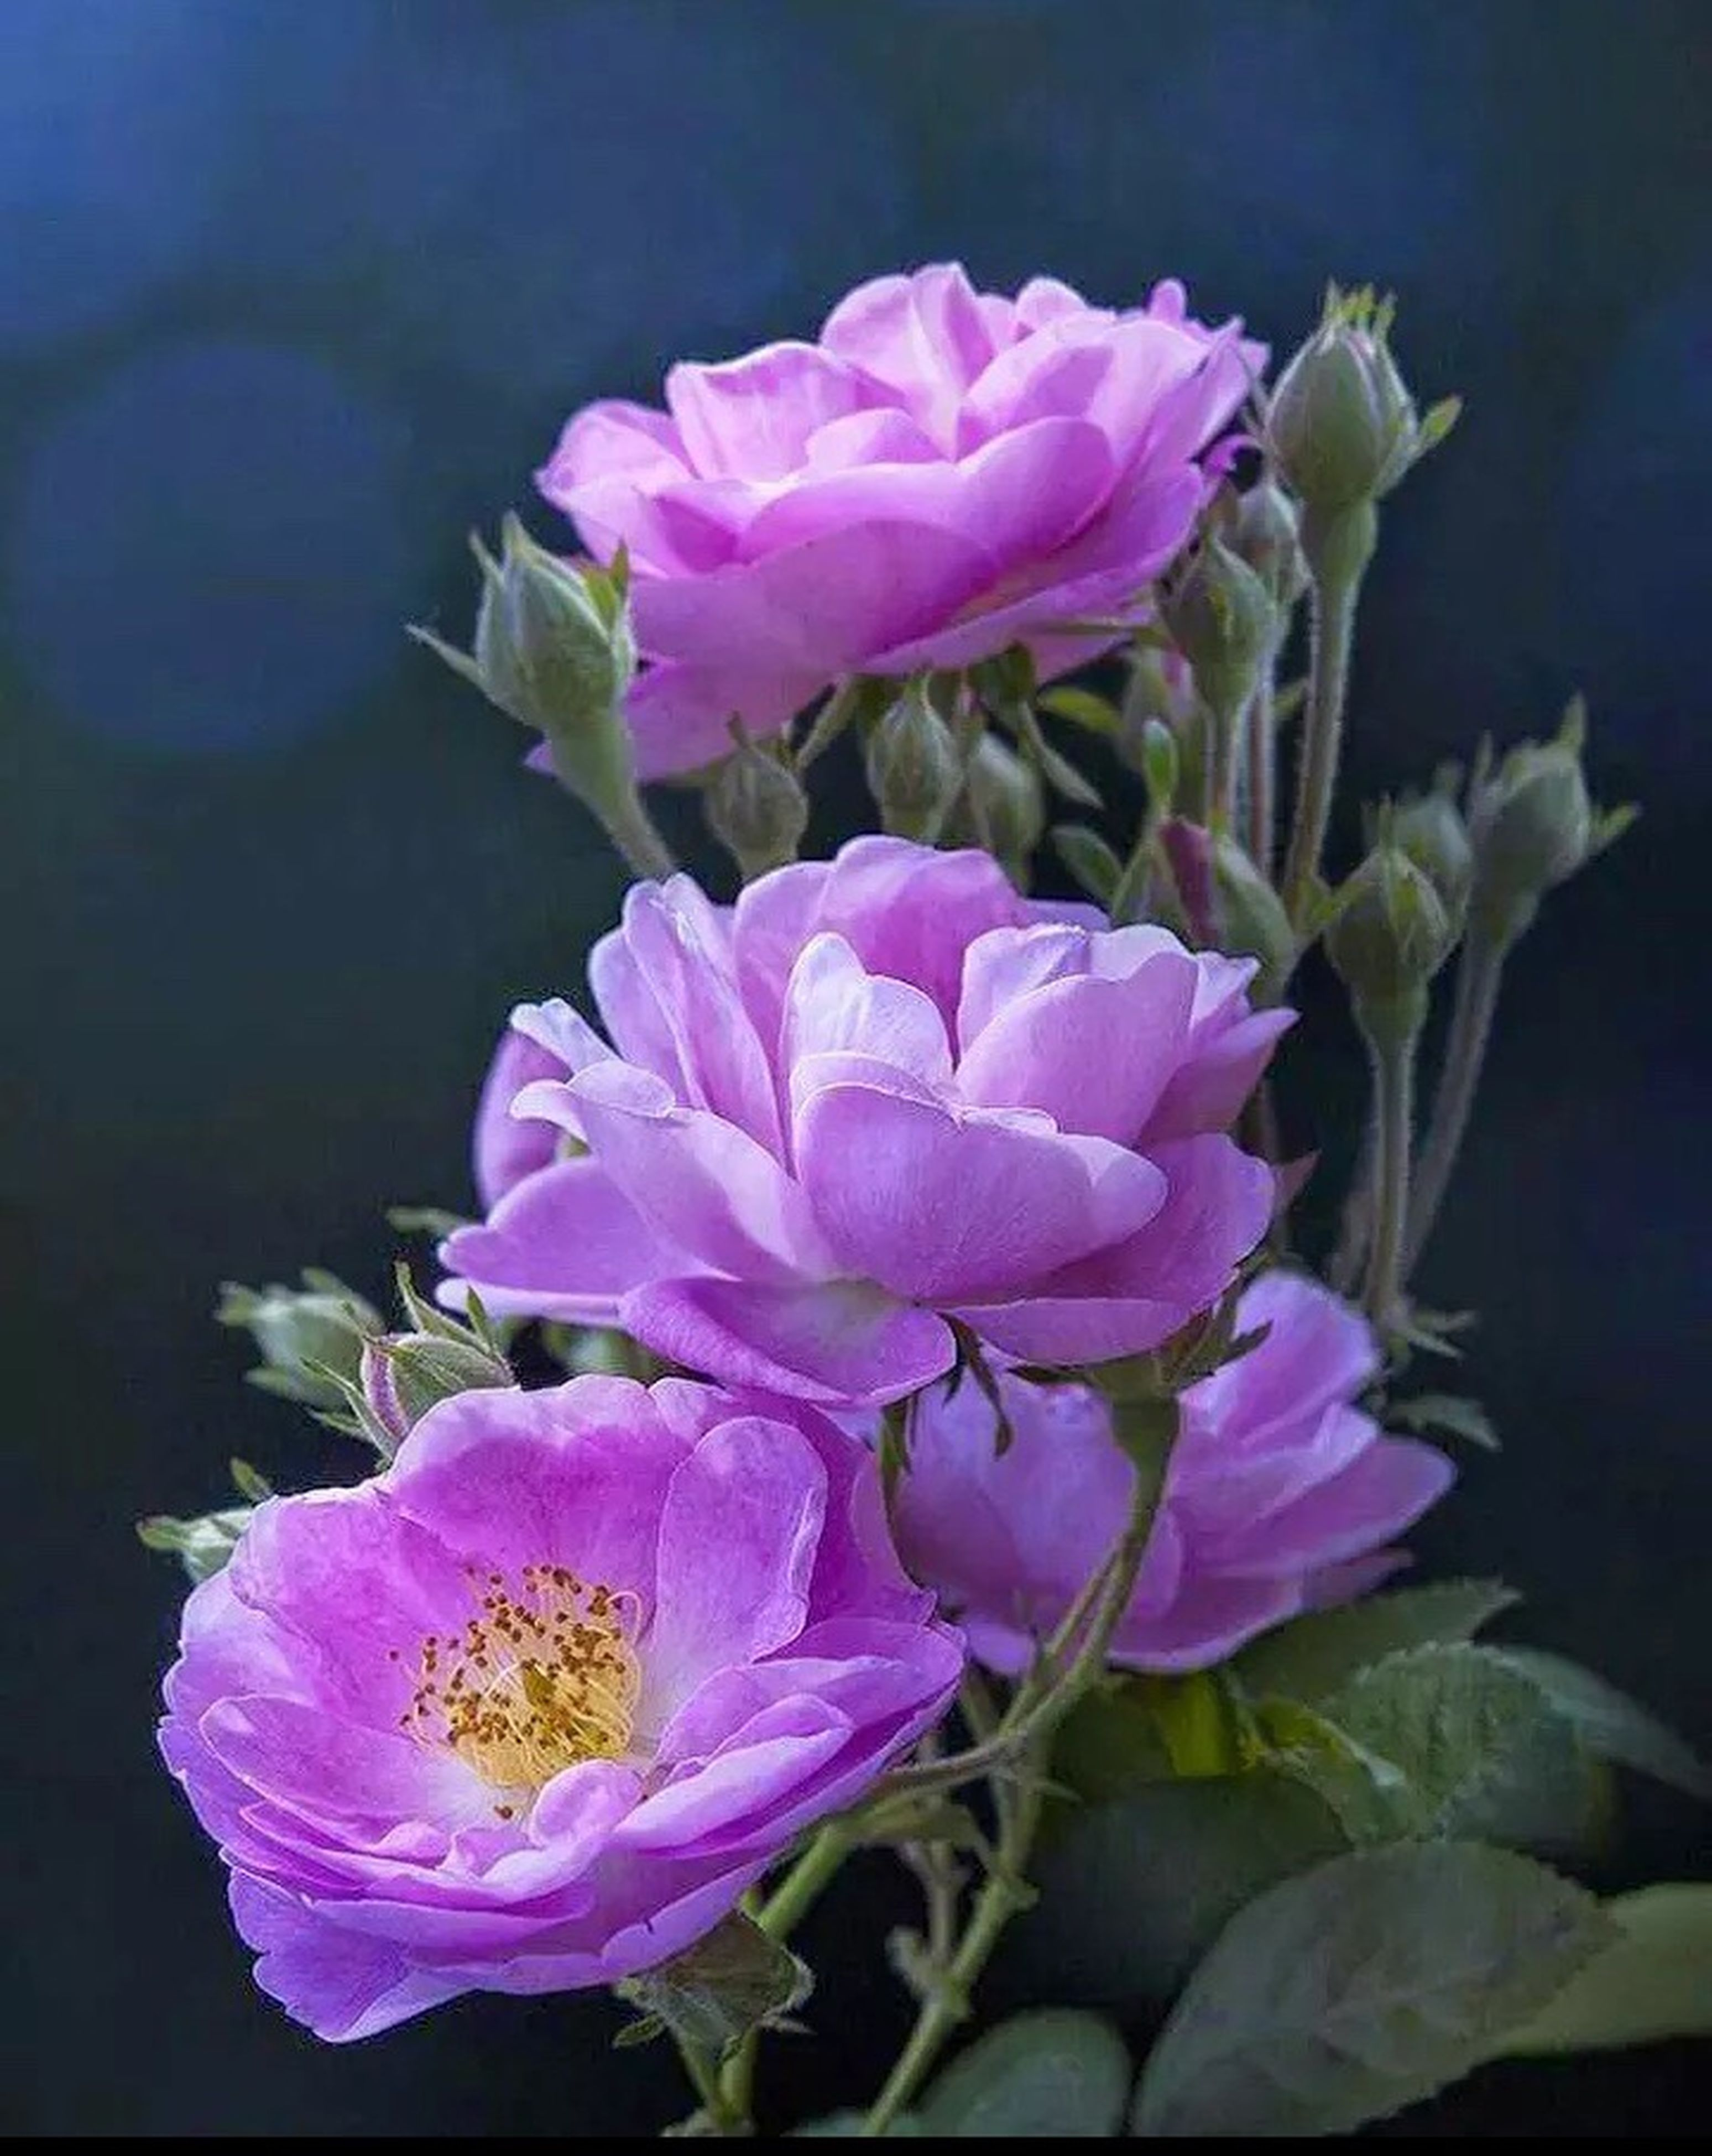 flower, freshness, fragility, petal, close-up, flower head, beauty in nature, springtime, pink color, growth, in bloom, season, blossom, nature, botany, selective focus, vibrant color, bunch of flowers, softness, pink, bloom, focus on foreground, flowering plant, no people, rose petals